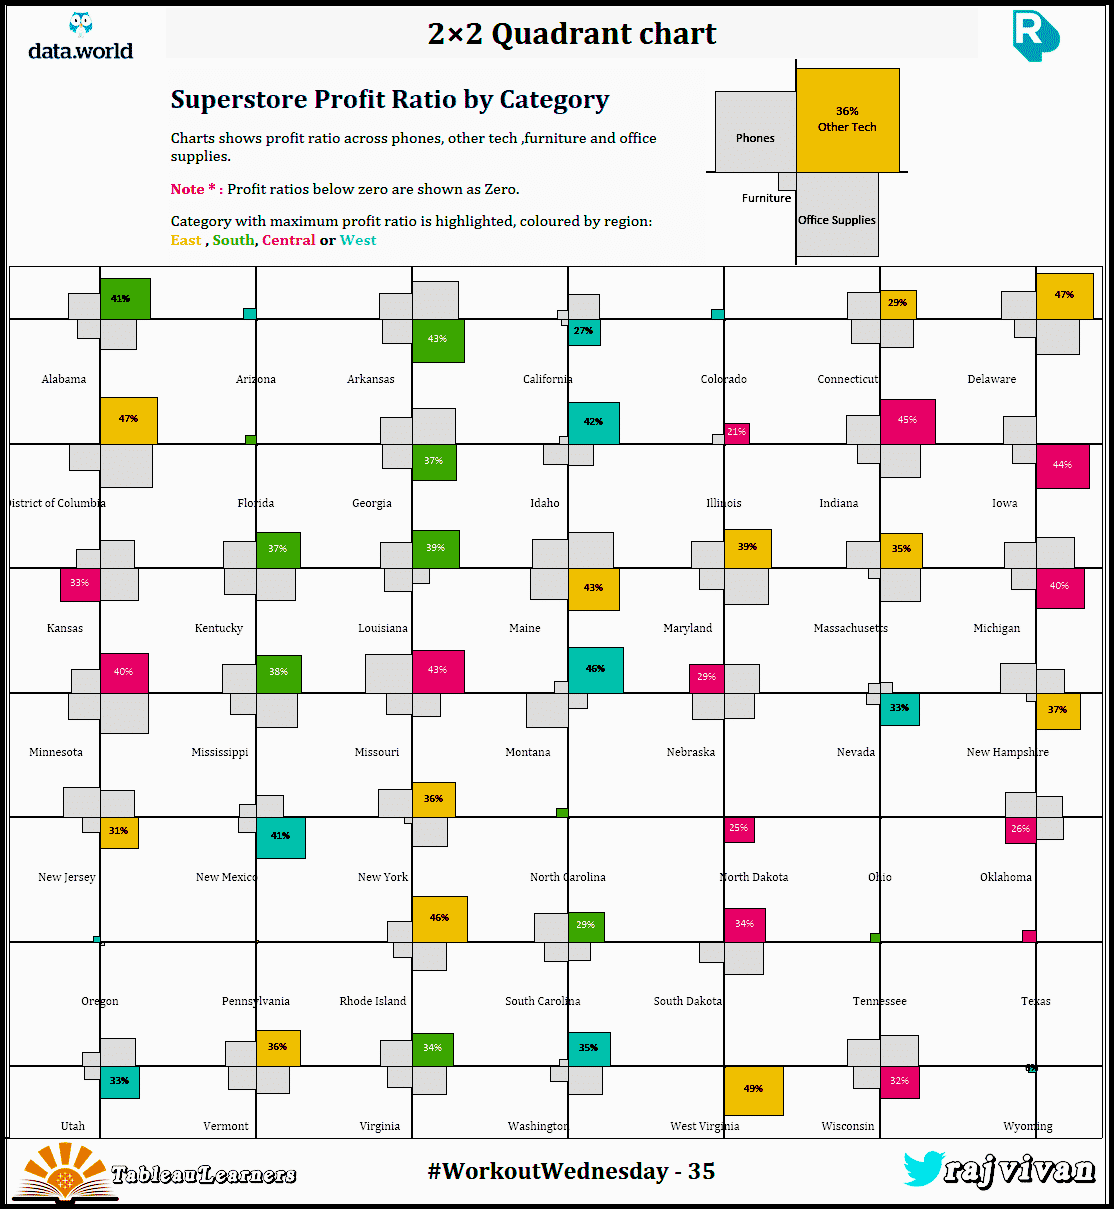 WorkoutWednesday S02 E35 - Quadrant chart In tableau | Vizartpandey